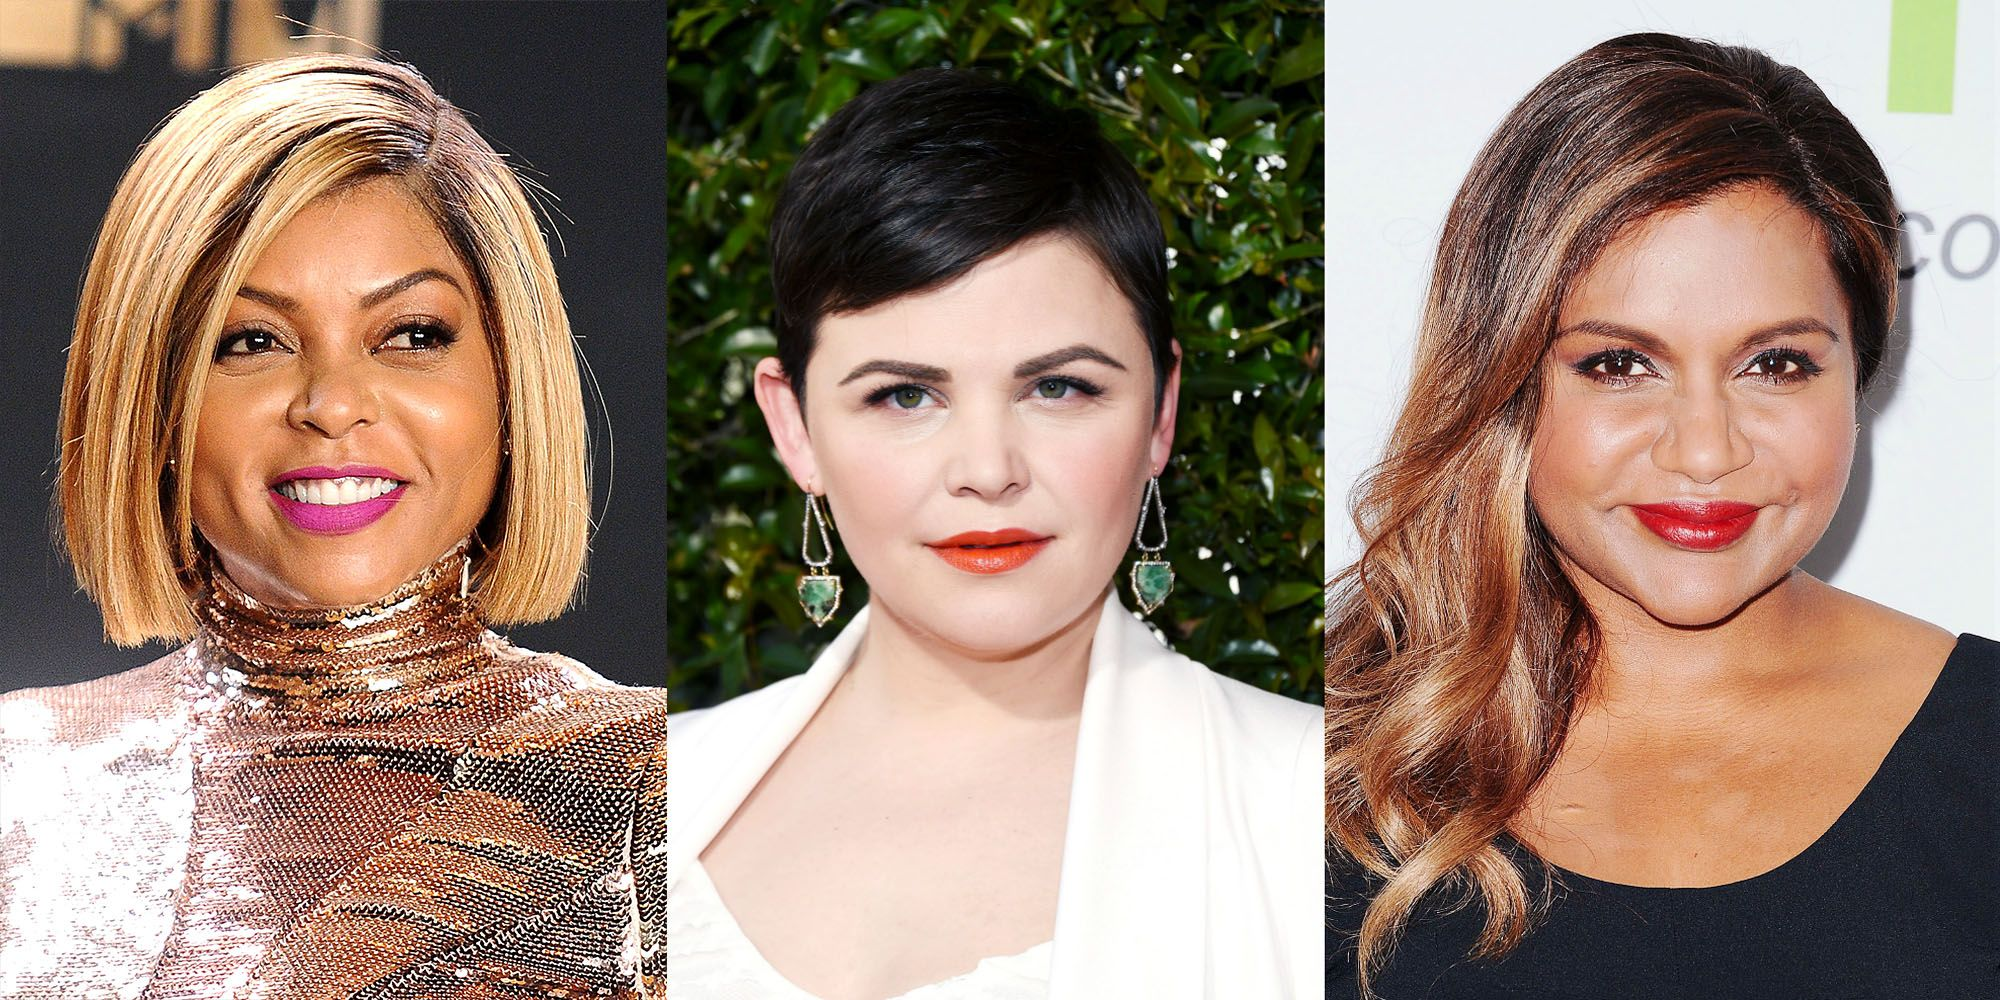 15 cute hairstyles for round faces - 15 short, medium, and long